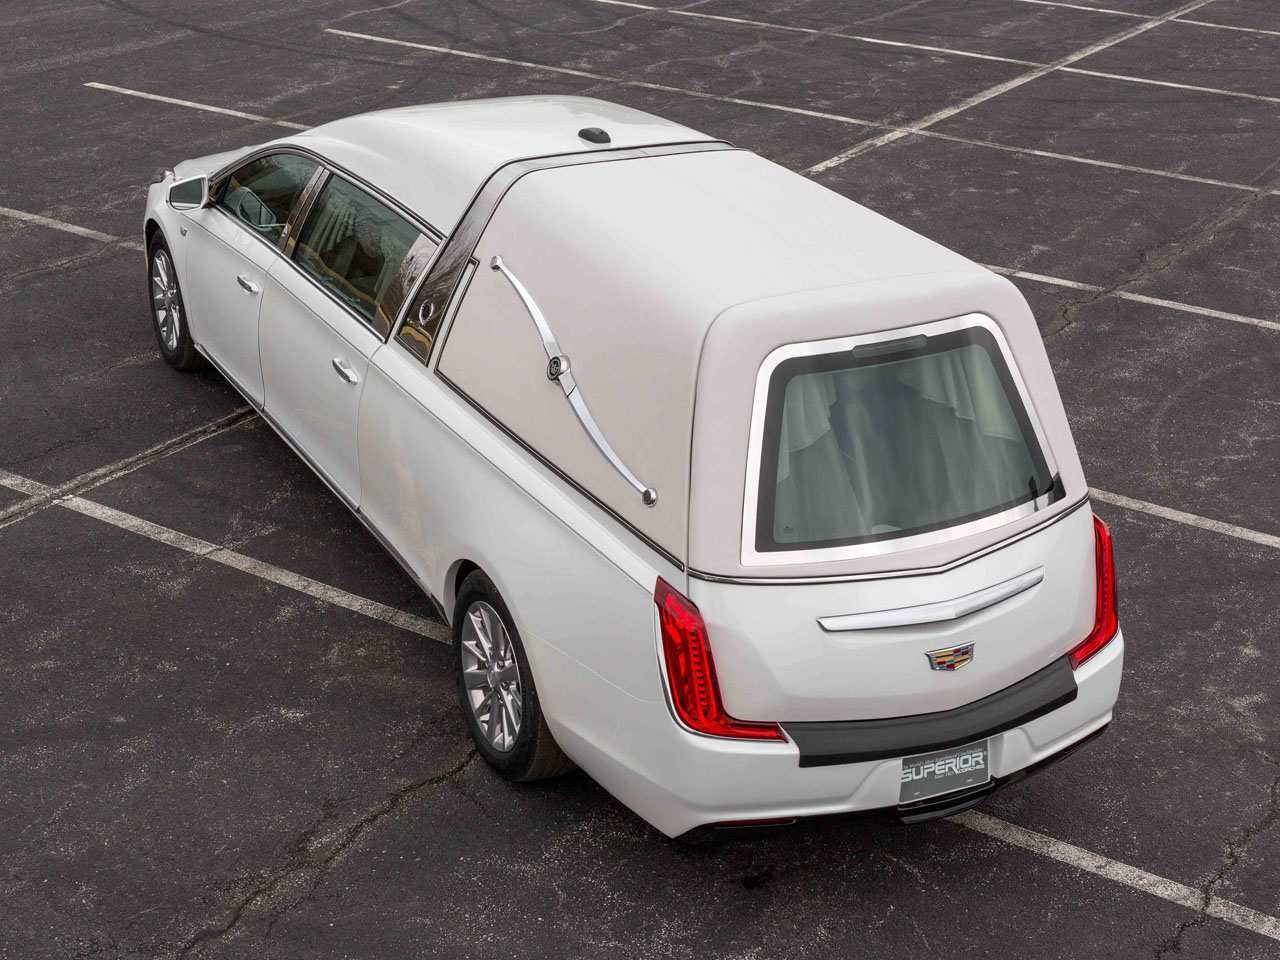 63 New 2019 Cadillac Hearse Prices